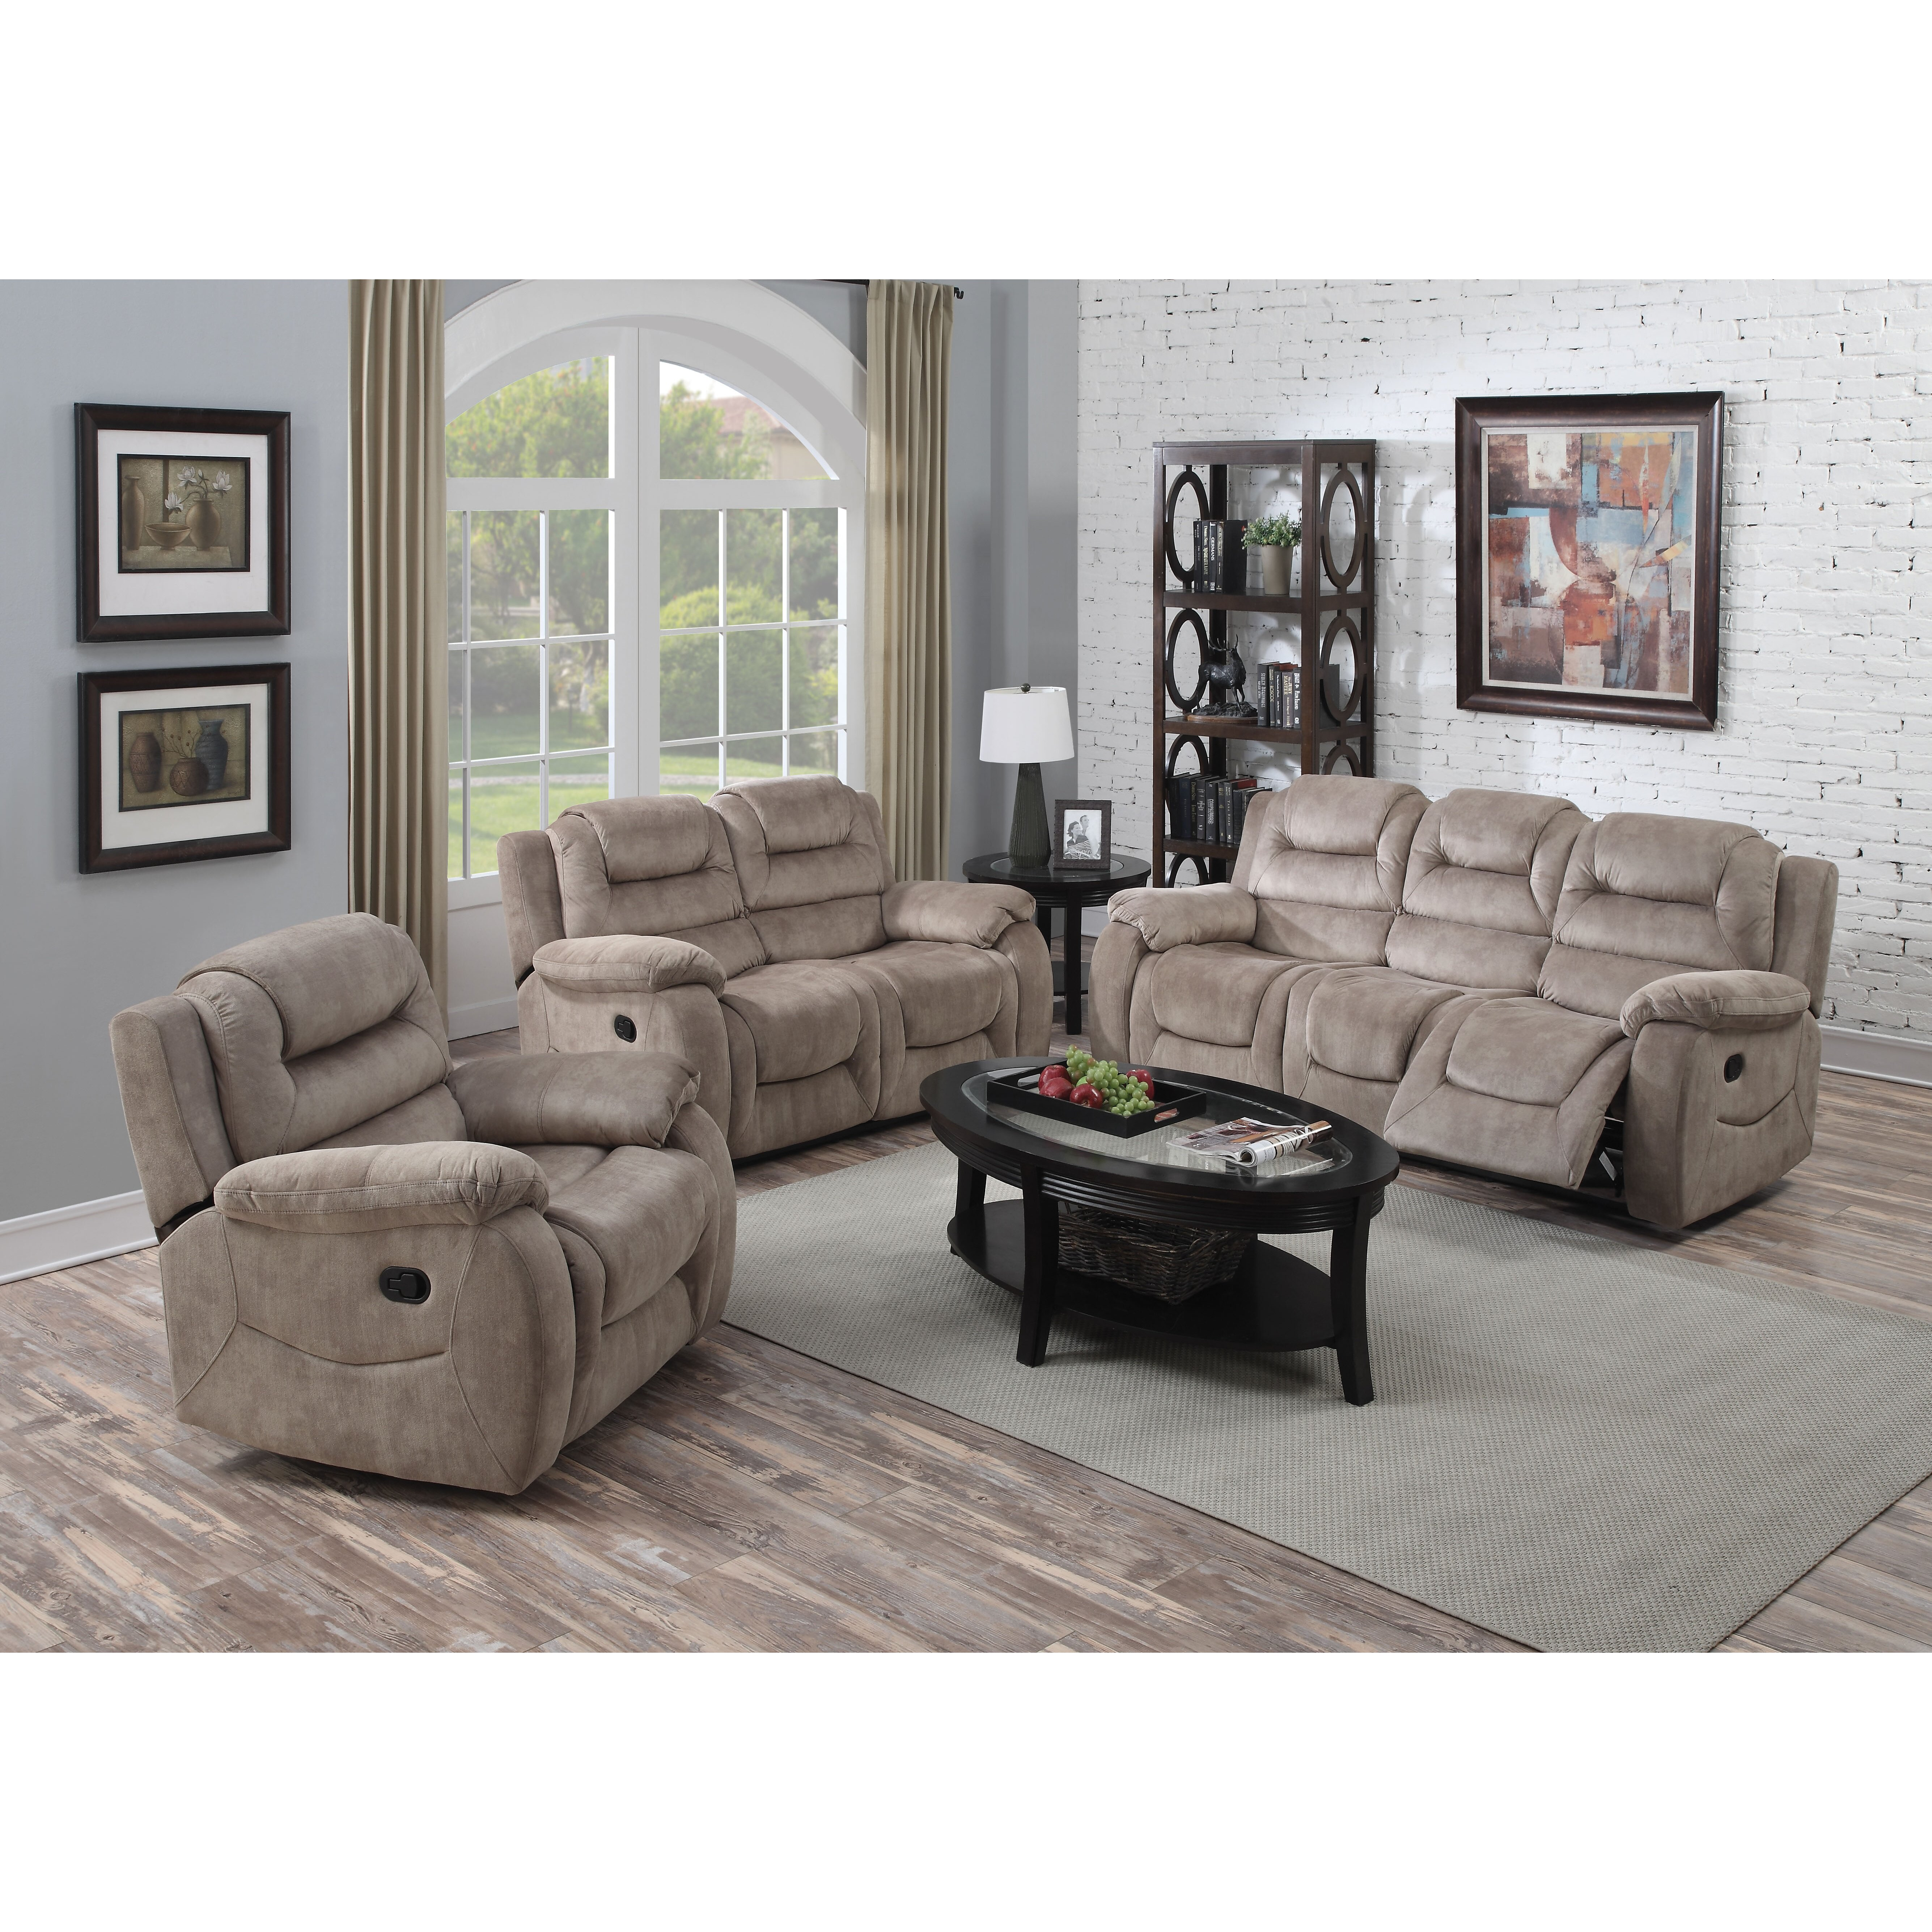 ACME Furniture Dreka Living Room Collection